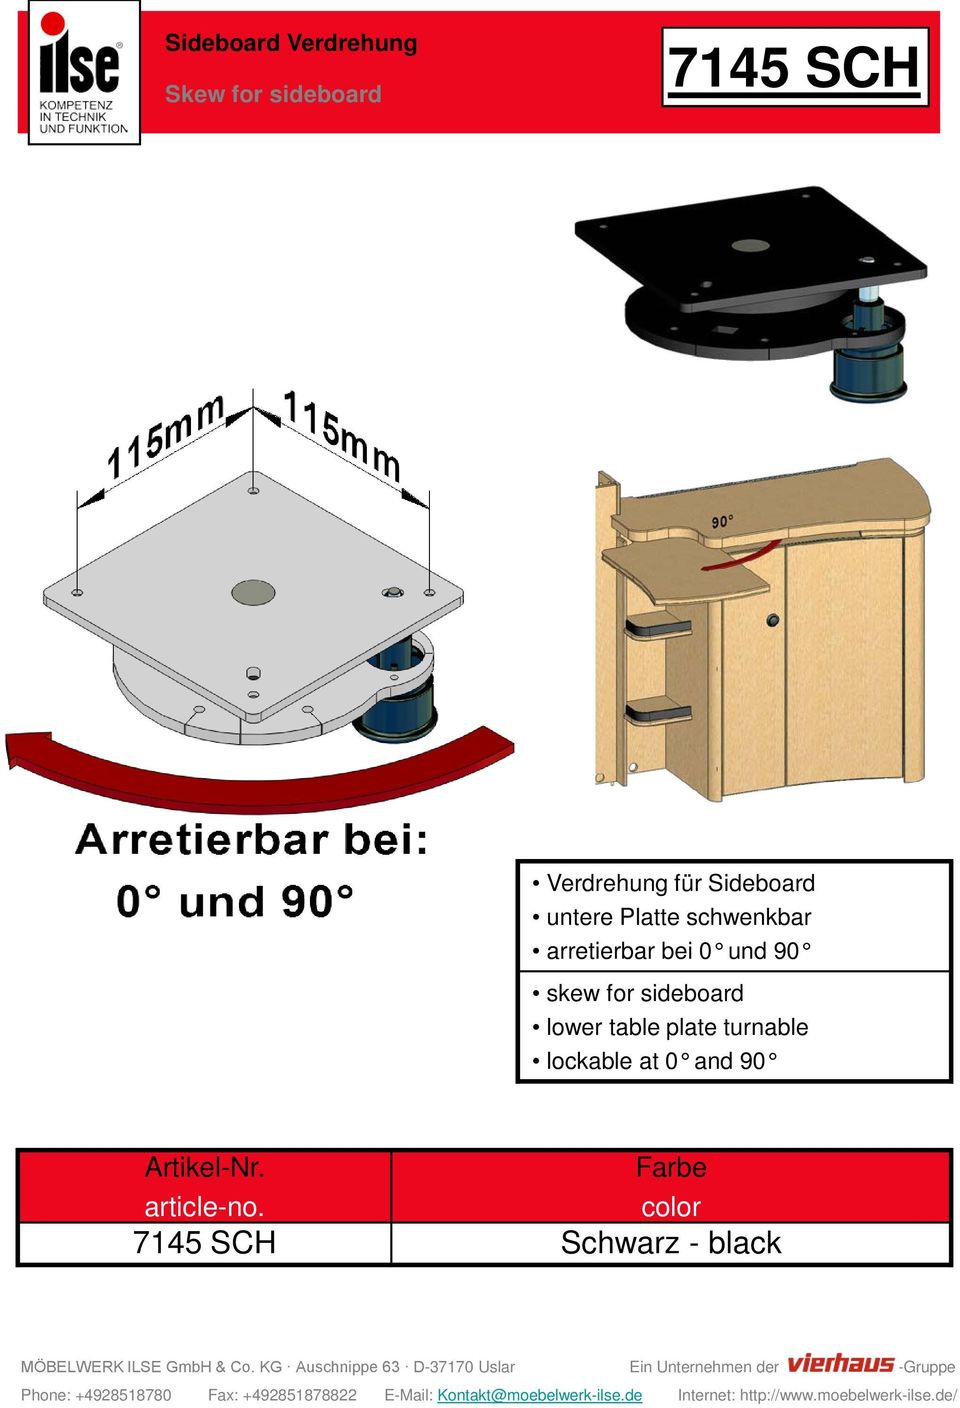 arretierbar bei 0 und 90 skew for sideboard lower